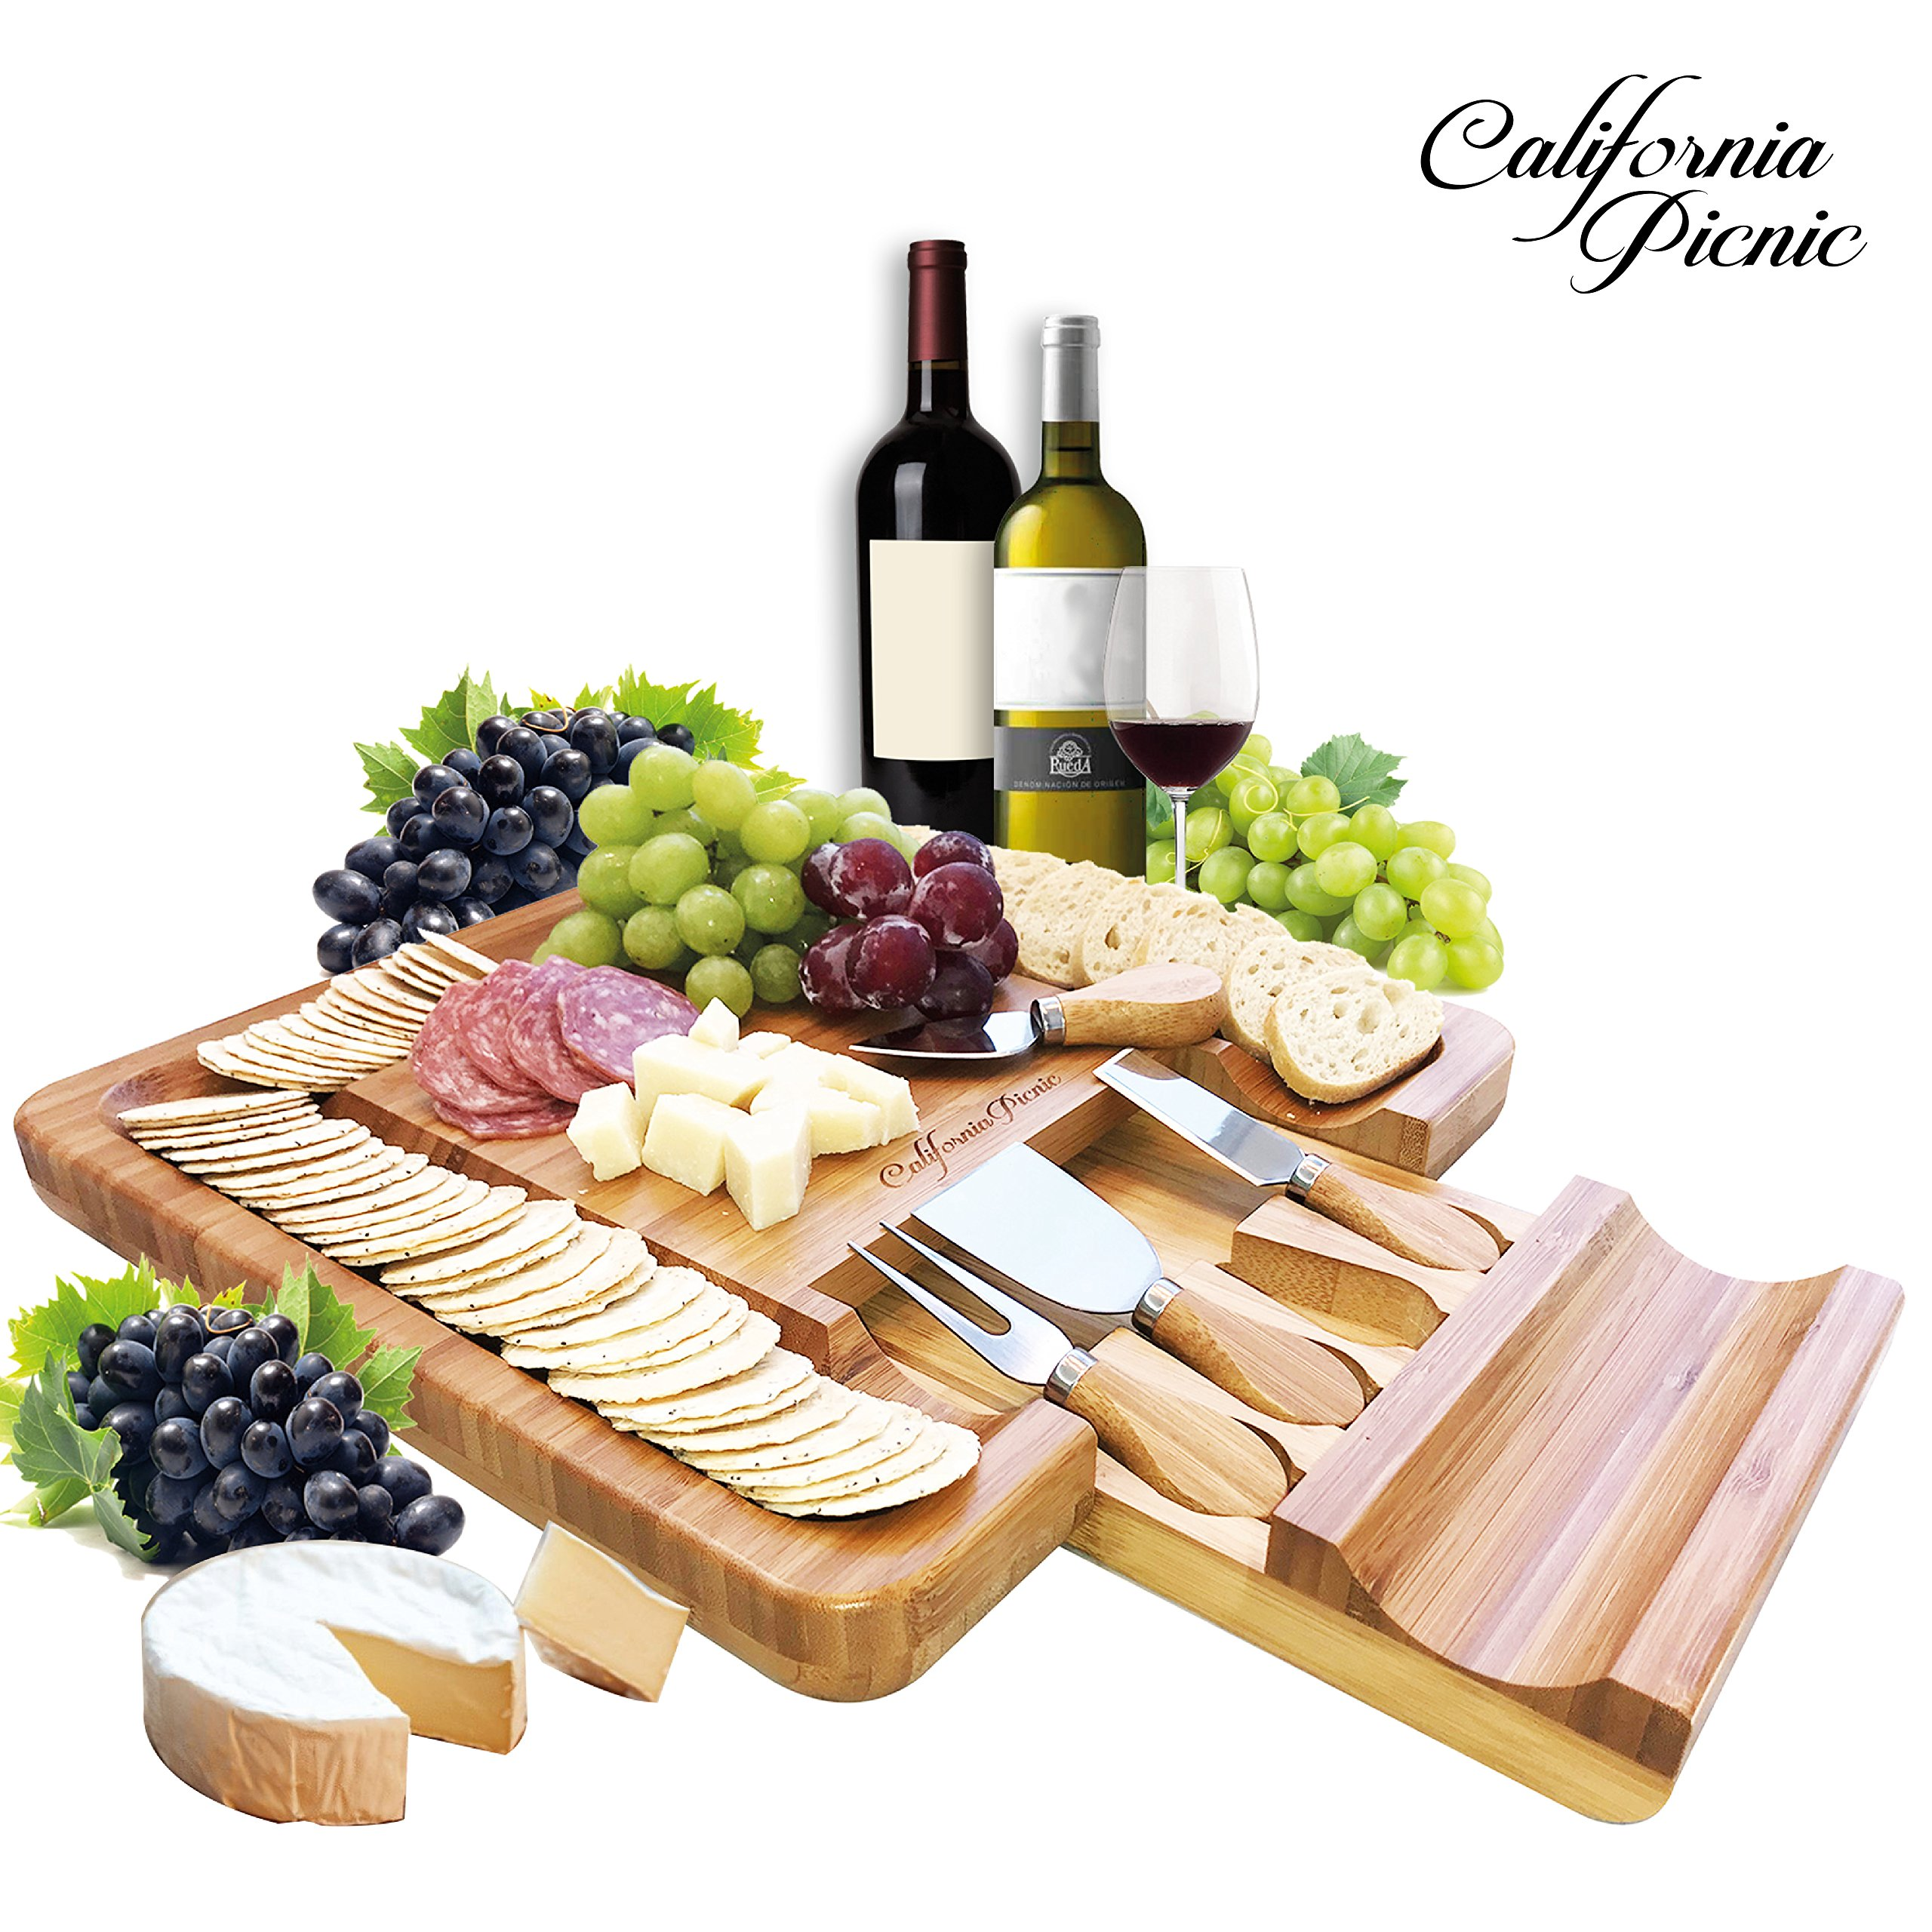 Cheese Board and Knife Set   Charcuterie Board   Bamboo Cheese Tray with Cheese Knives Sets   Large Wooden Cheese Plate and Cheese Platter Board Set   Cheeseboard Gift Set 50th Birthday   Wedding Gift